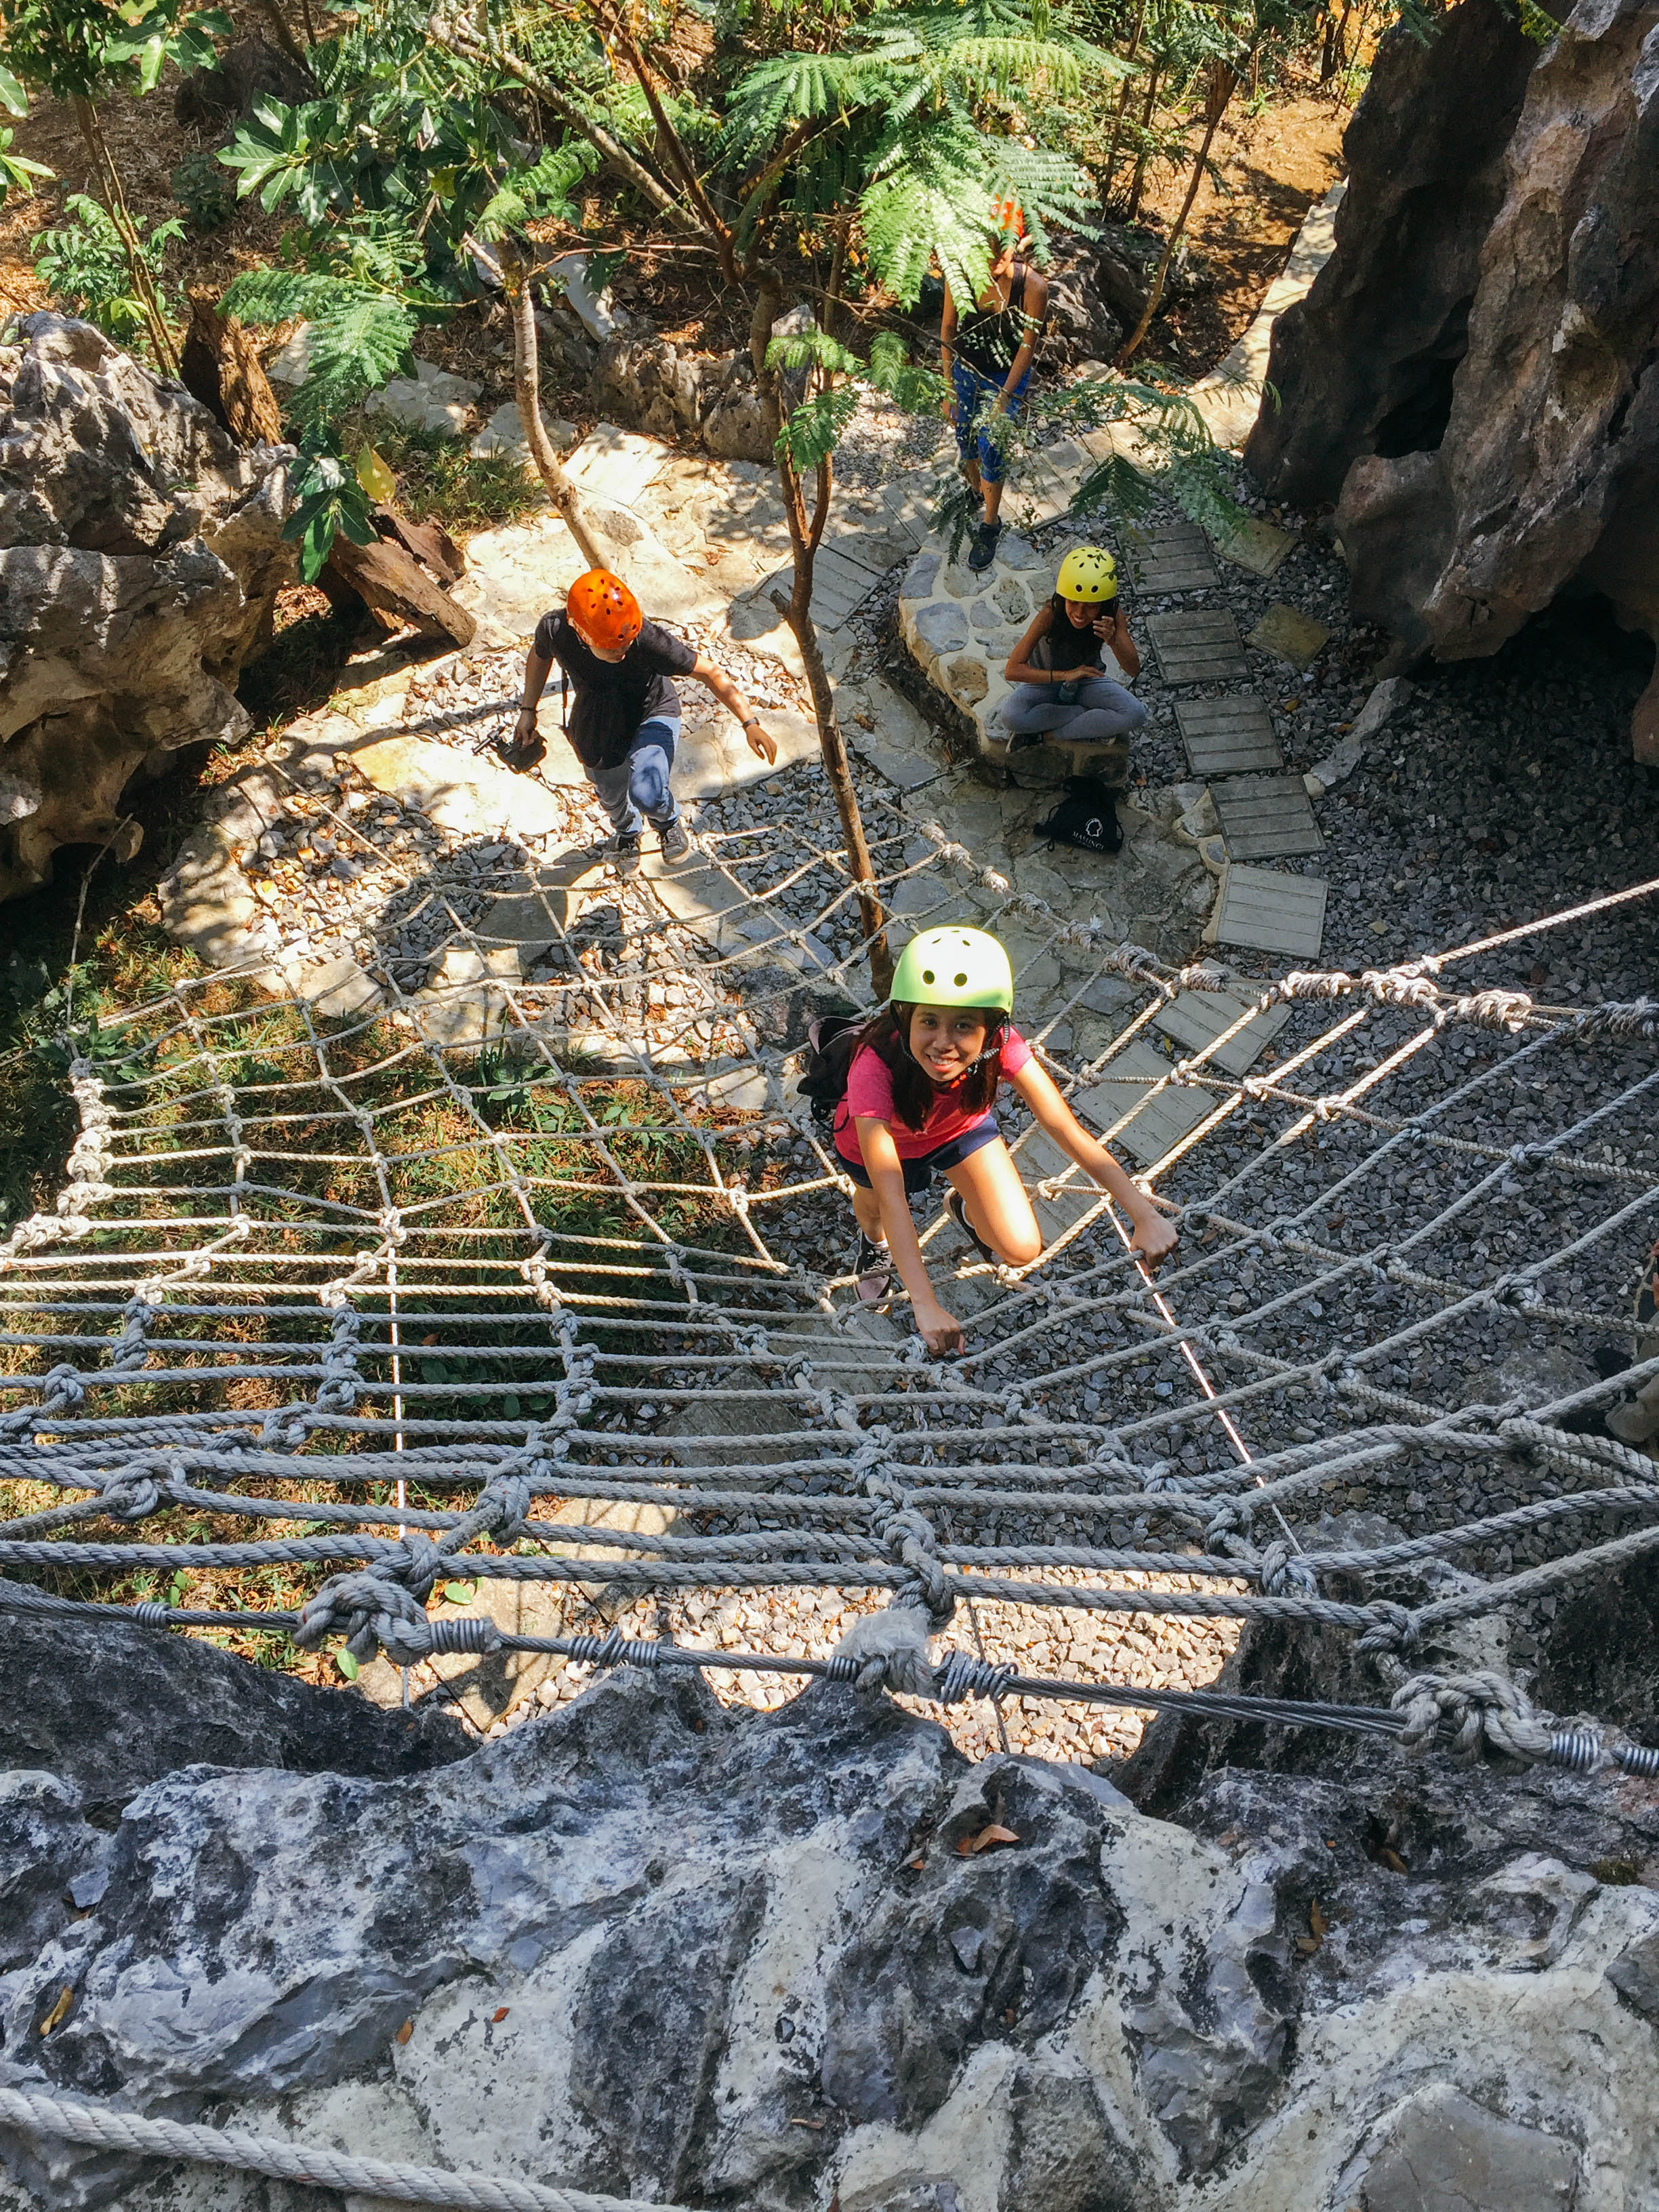 LAMBAT. The first rope course that visiting groups will encounter in Masungi is a rope net that allows them to climb a rock wall and onto the rest of the conservation. Photo by Nicole Reyes/Rappler